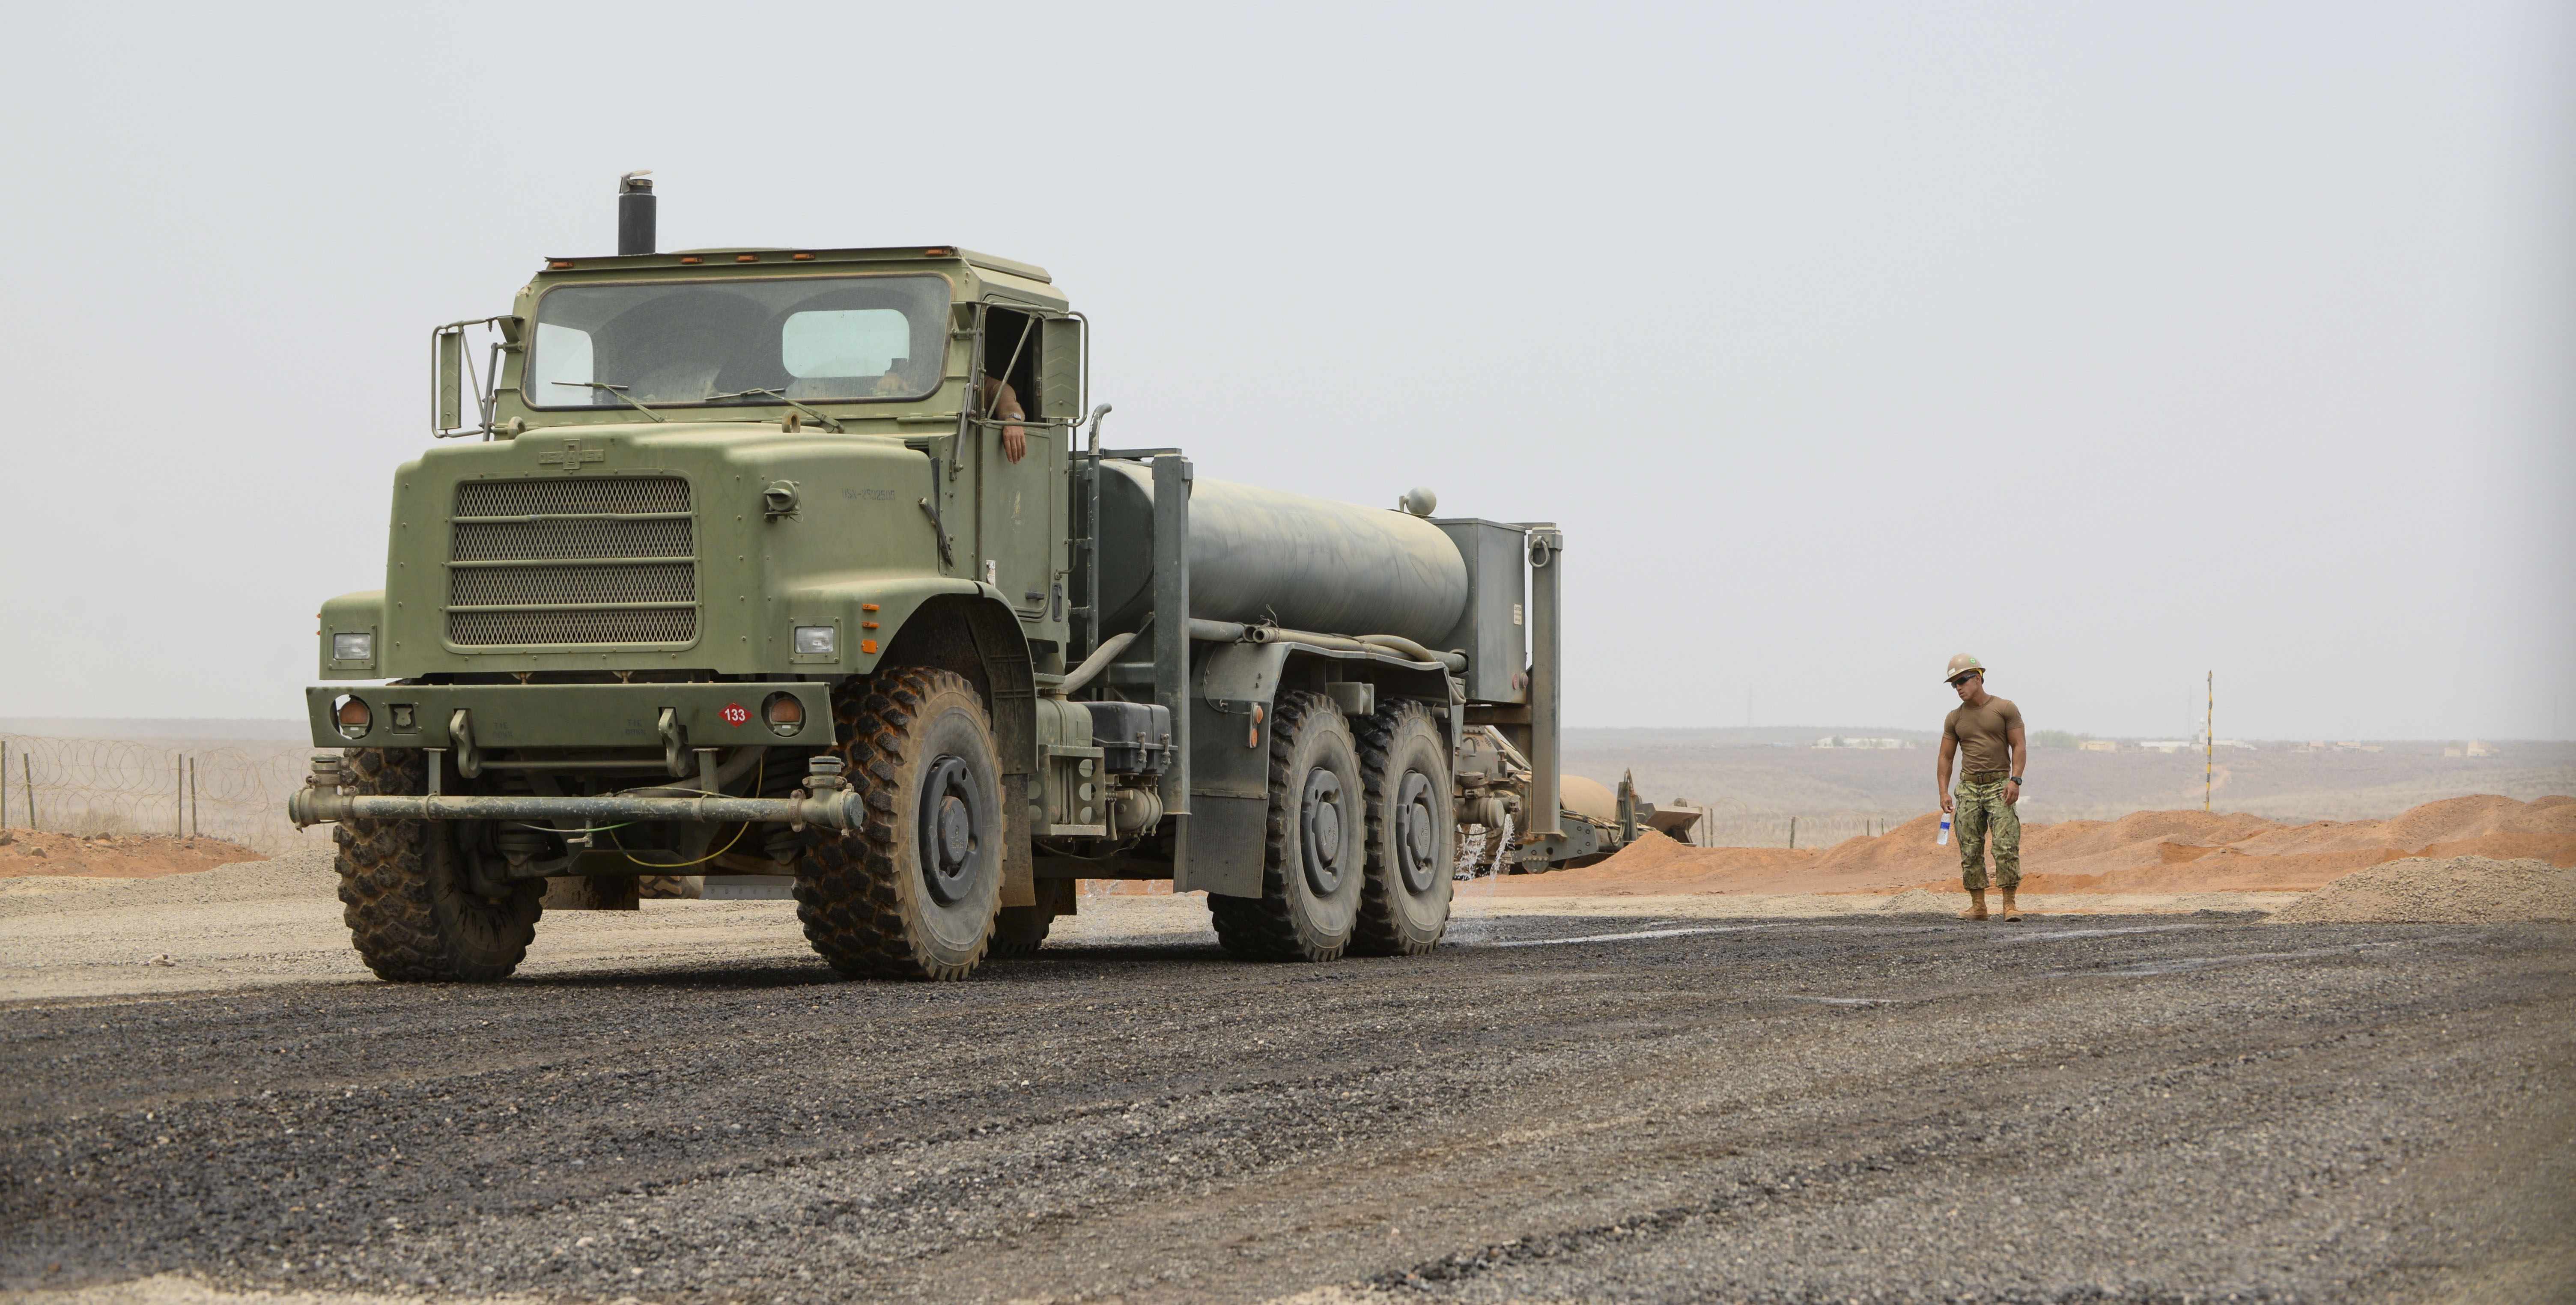 Petty Officer 2nd Class Tom Ross, Naval Mobile Construction Battalion 22 heavy equipment operator, drives a water truck over a gravel parking pad while Petty Officer 2nd Class Christian Rivera, NMCB 22 heavy equipment operator and team lead, watches his work at a Djibouti airfield, July 28, 2016. The water fell through the gravel, further compacting the surface and reducing dust. (U.S. Air Force photo by Staff Sgt. Benjamin Raughton/Released)